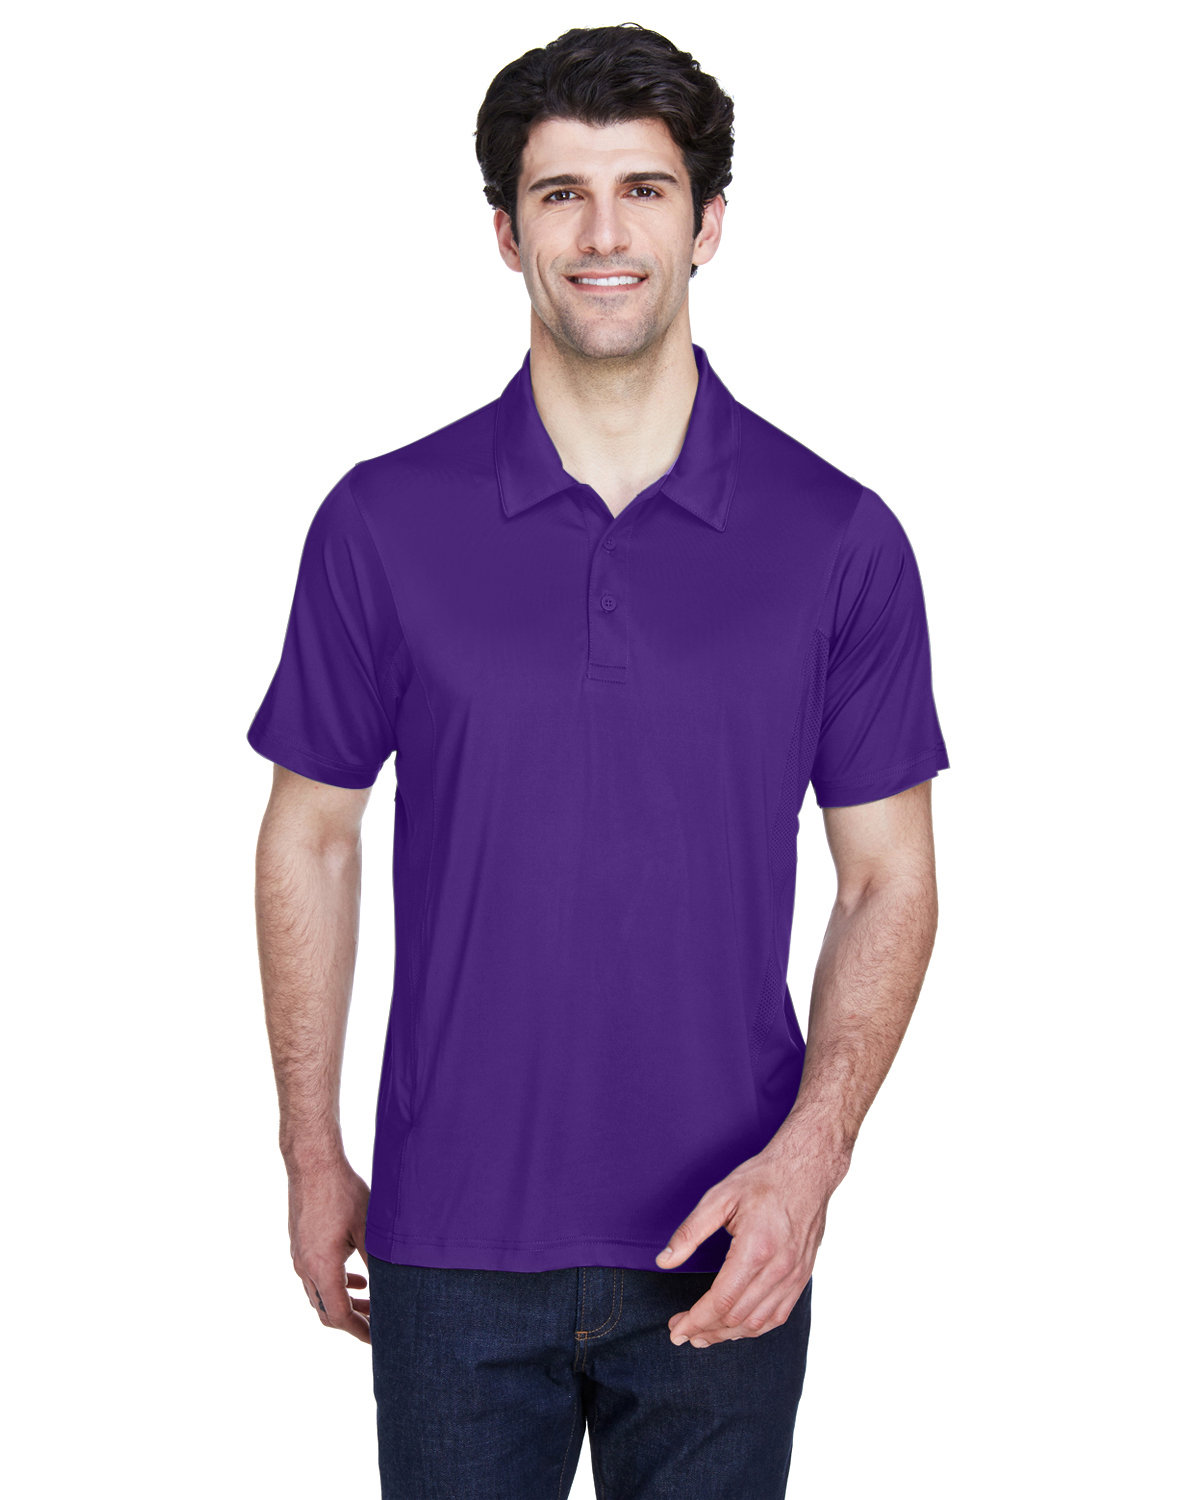 Team 365 Men's Charger Performance Polo SPORT PURPLE